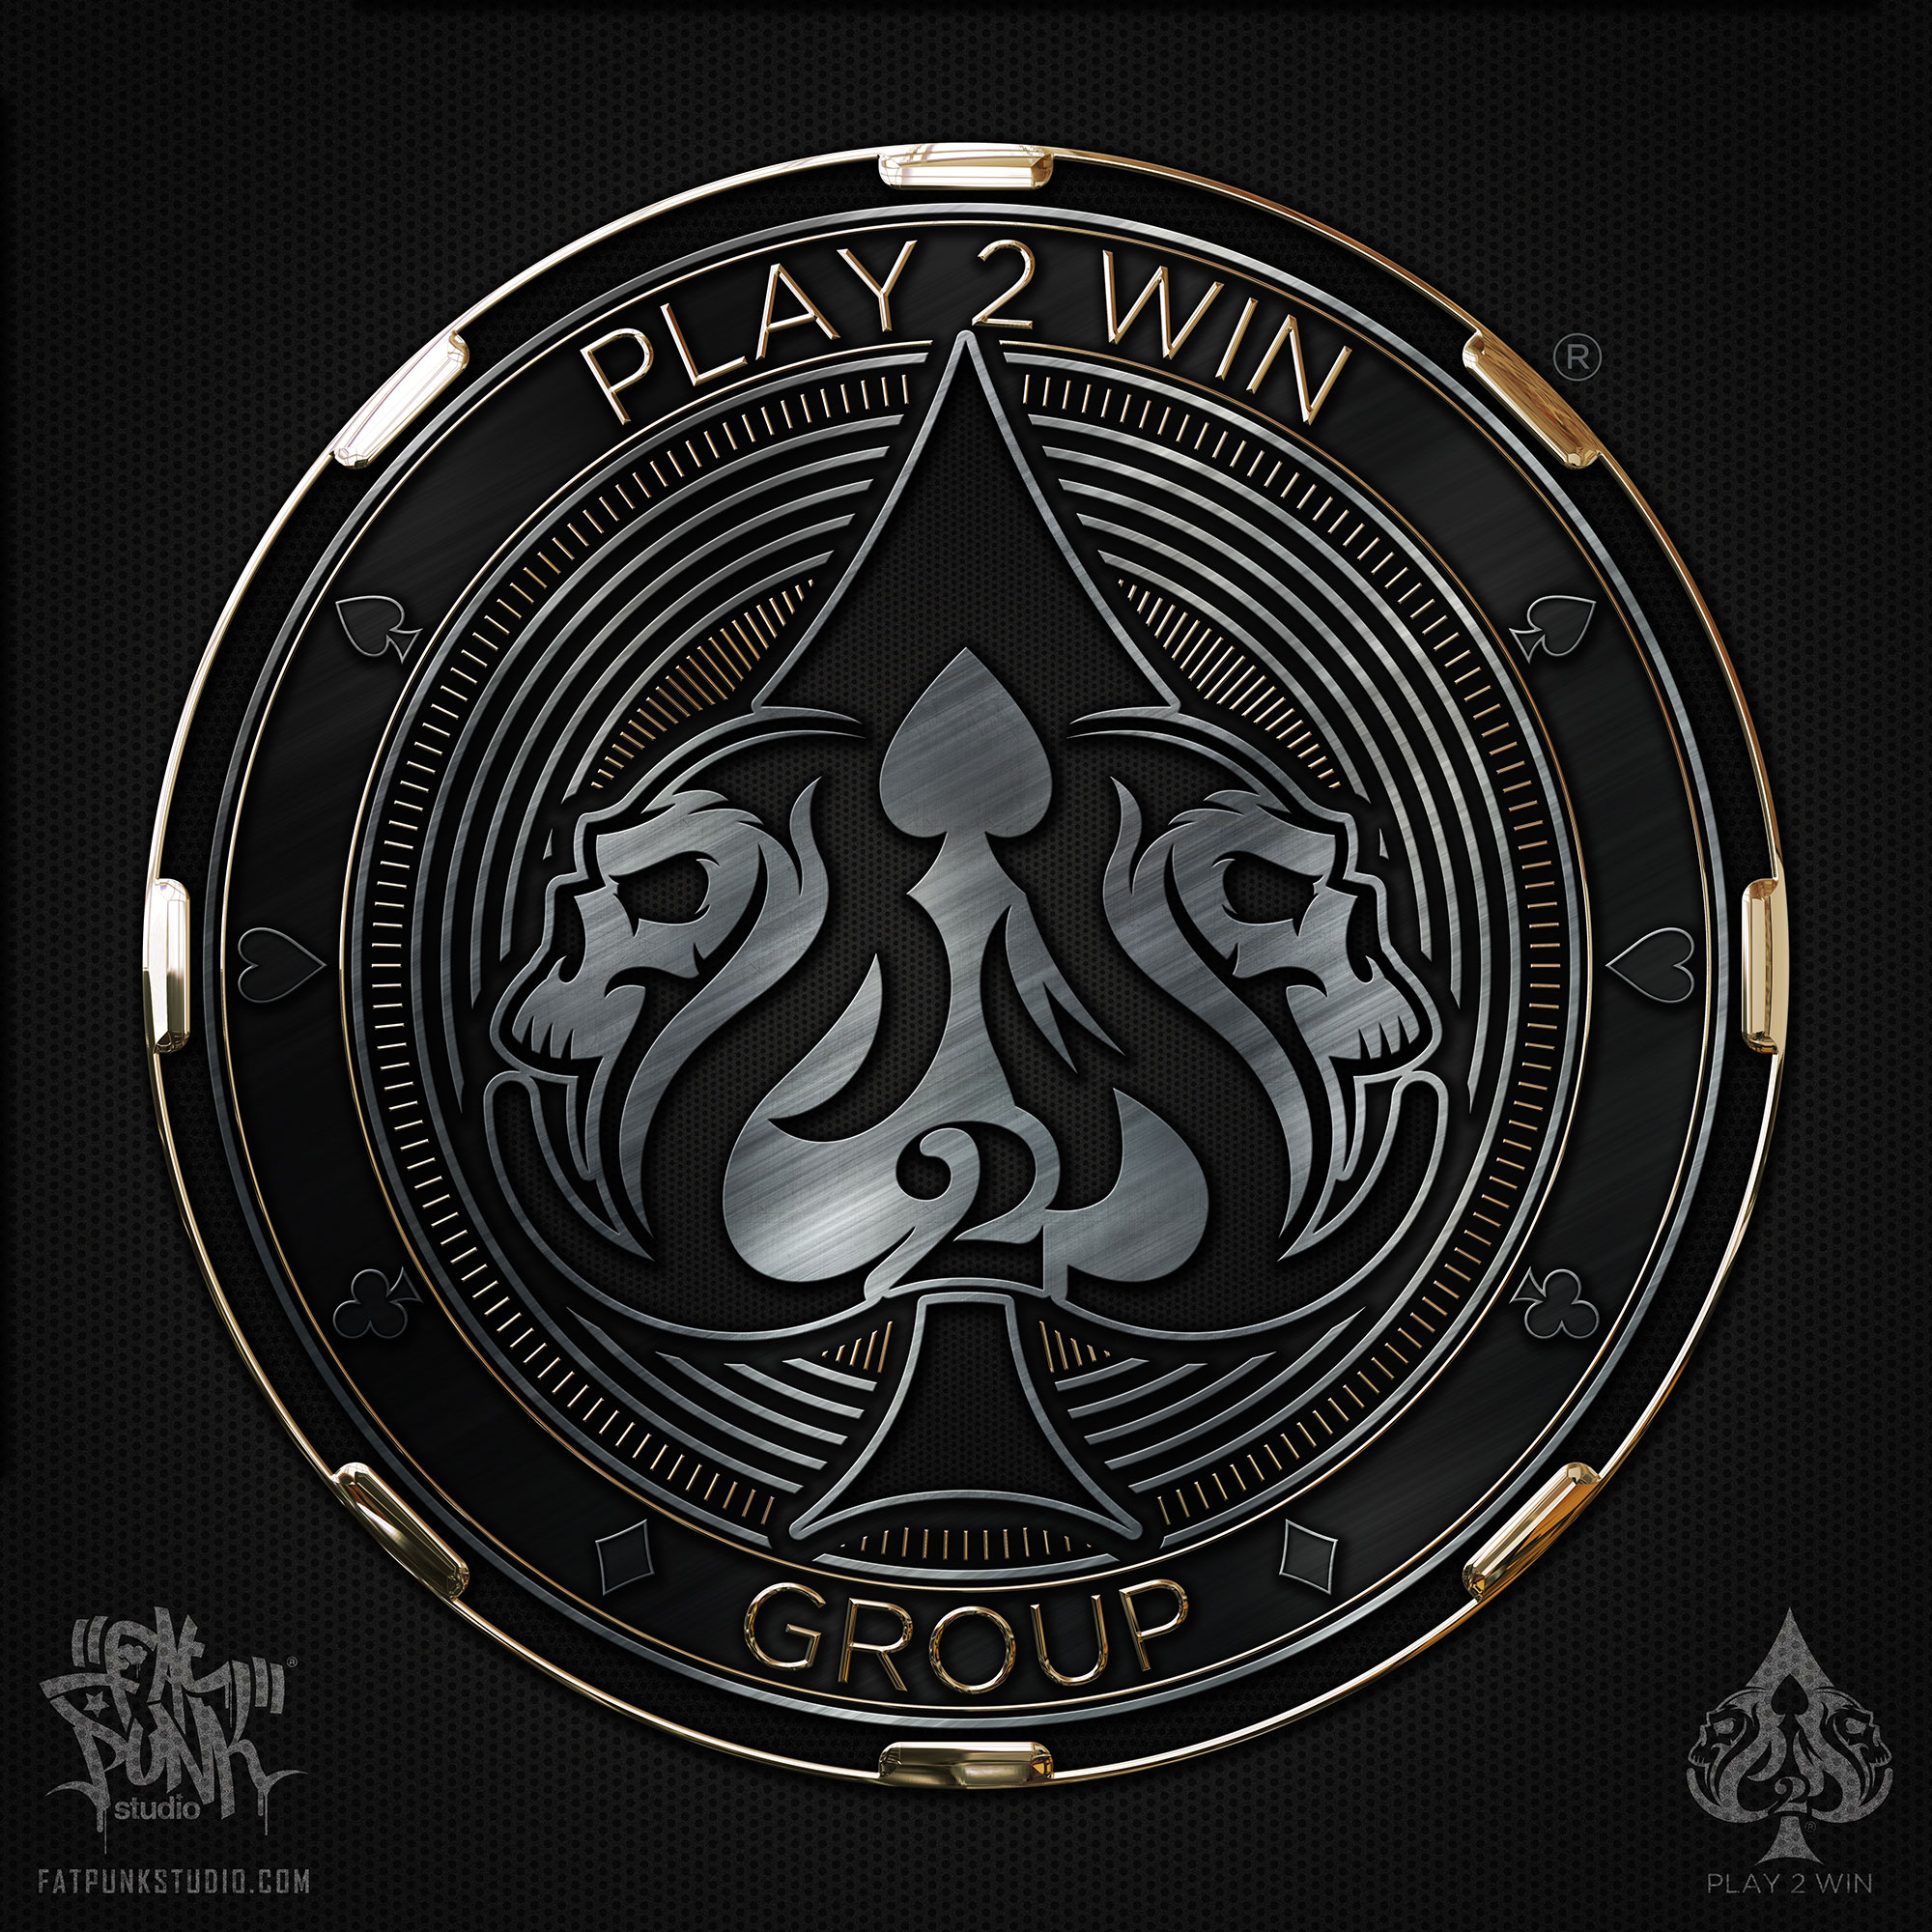 play-2-win-group-logo-design-03